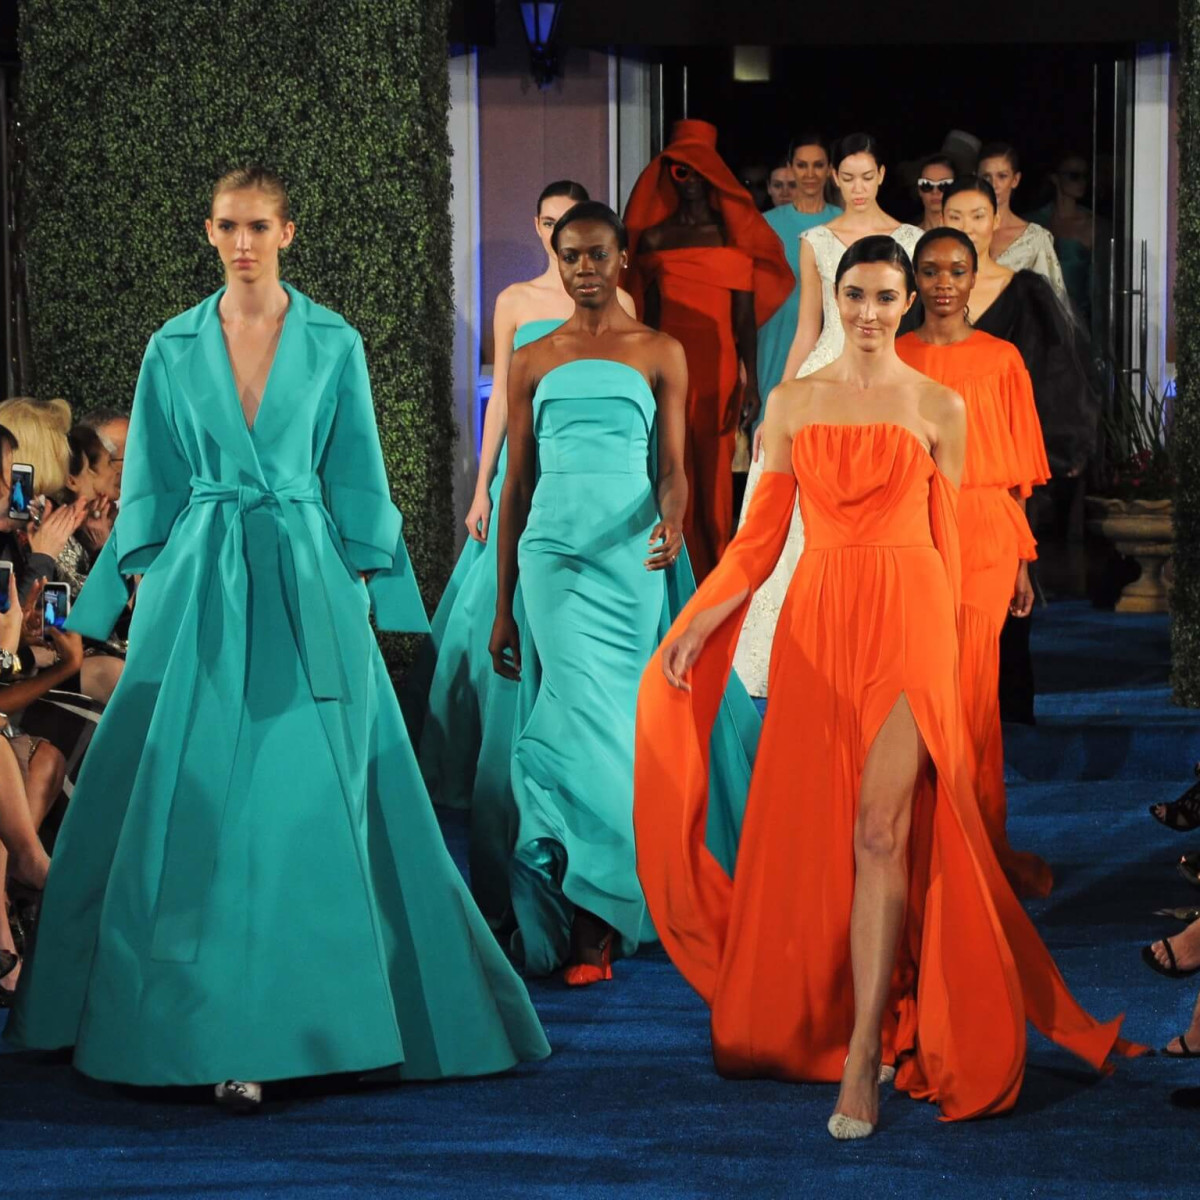 Christian Siriano runway show at Elizabeth Anthony